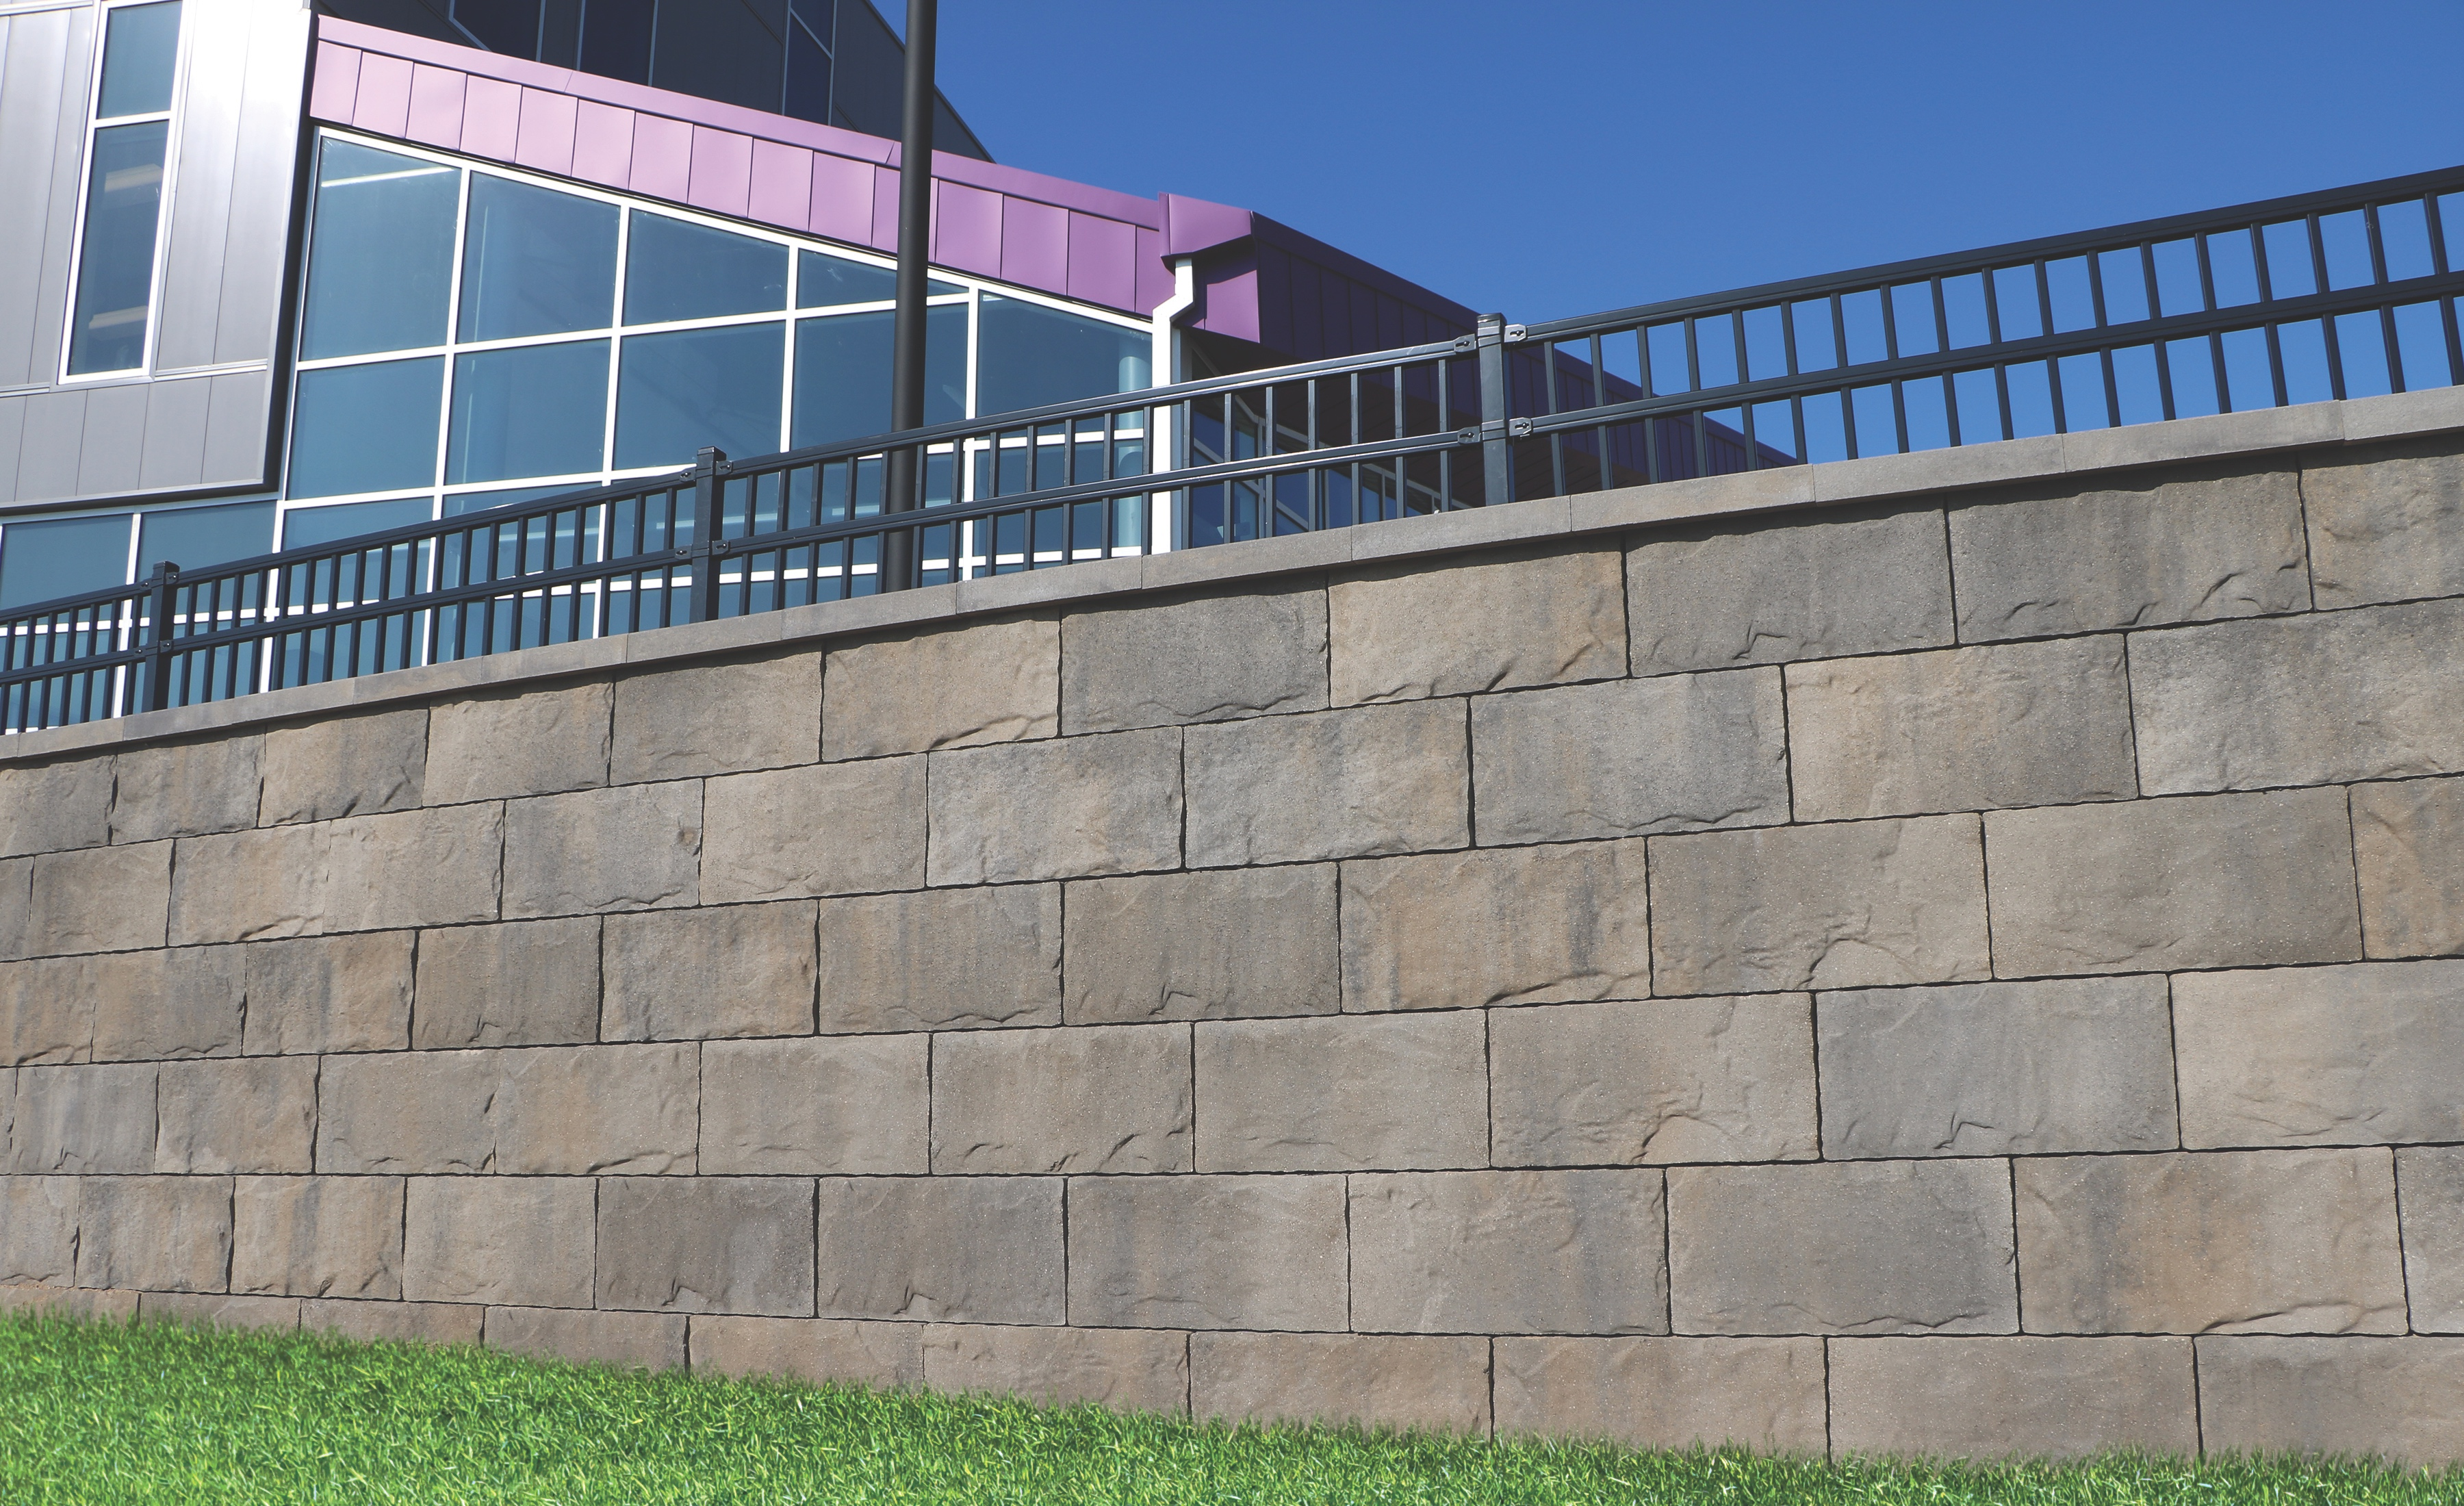 Retaining Walls 101 - An Introduction to Choosing the Right Wall